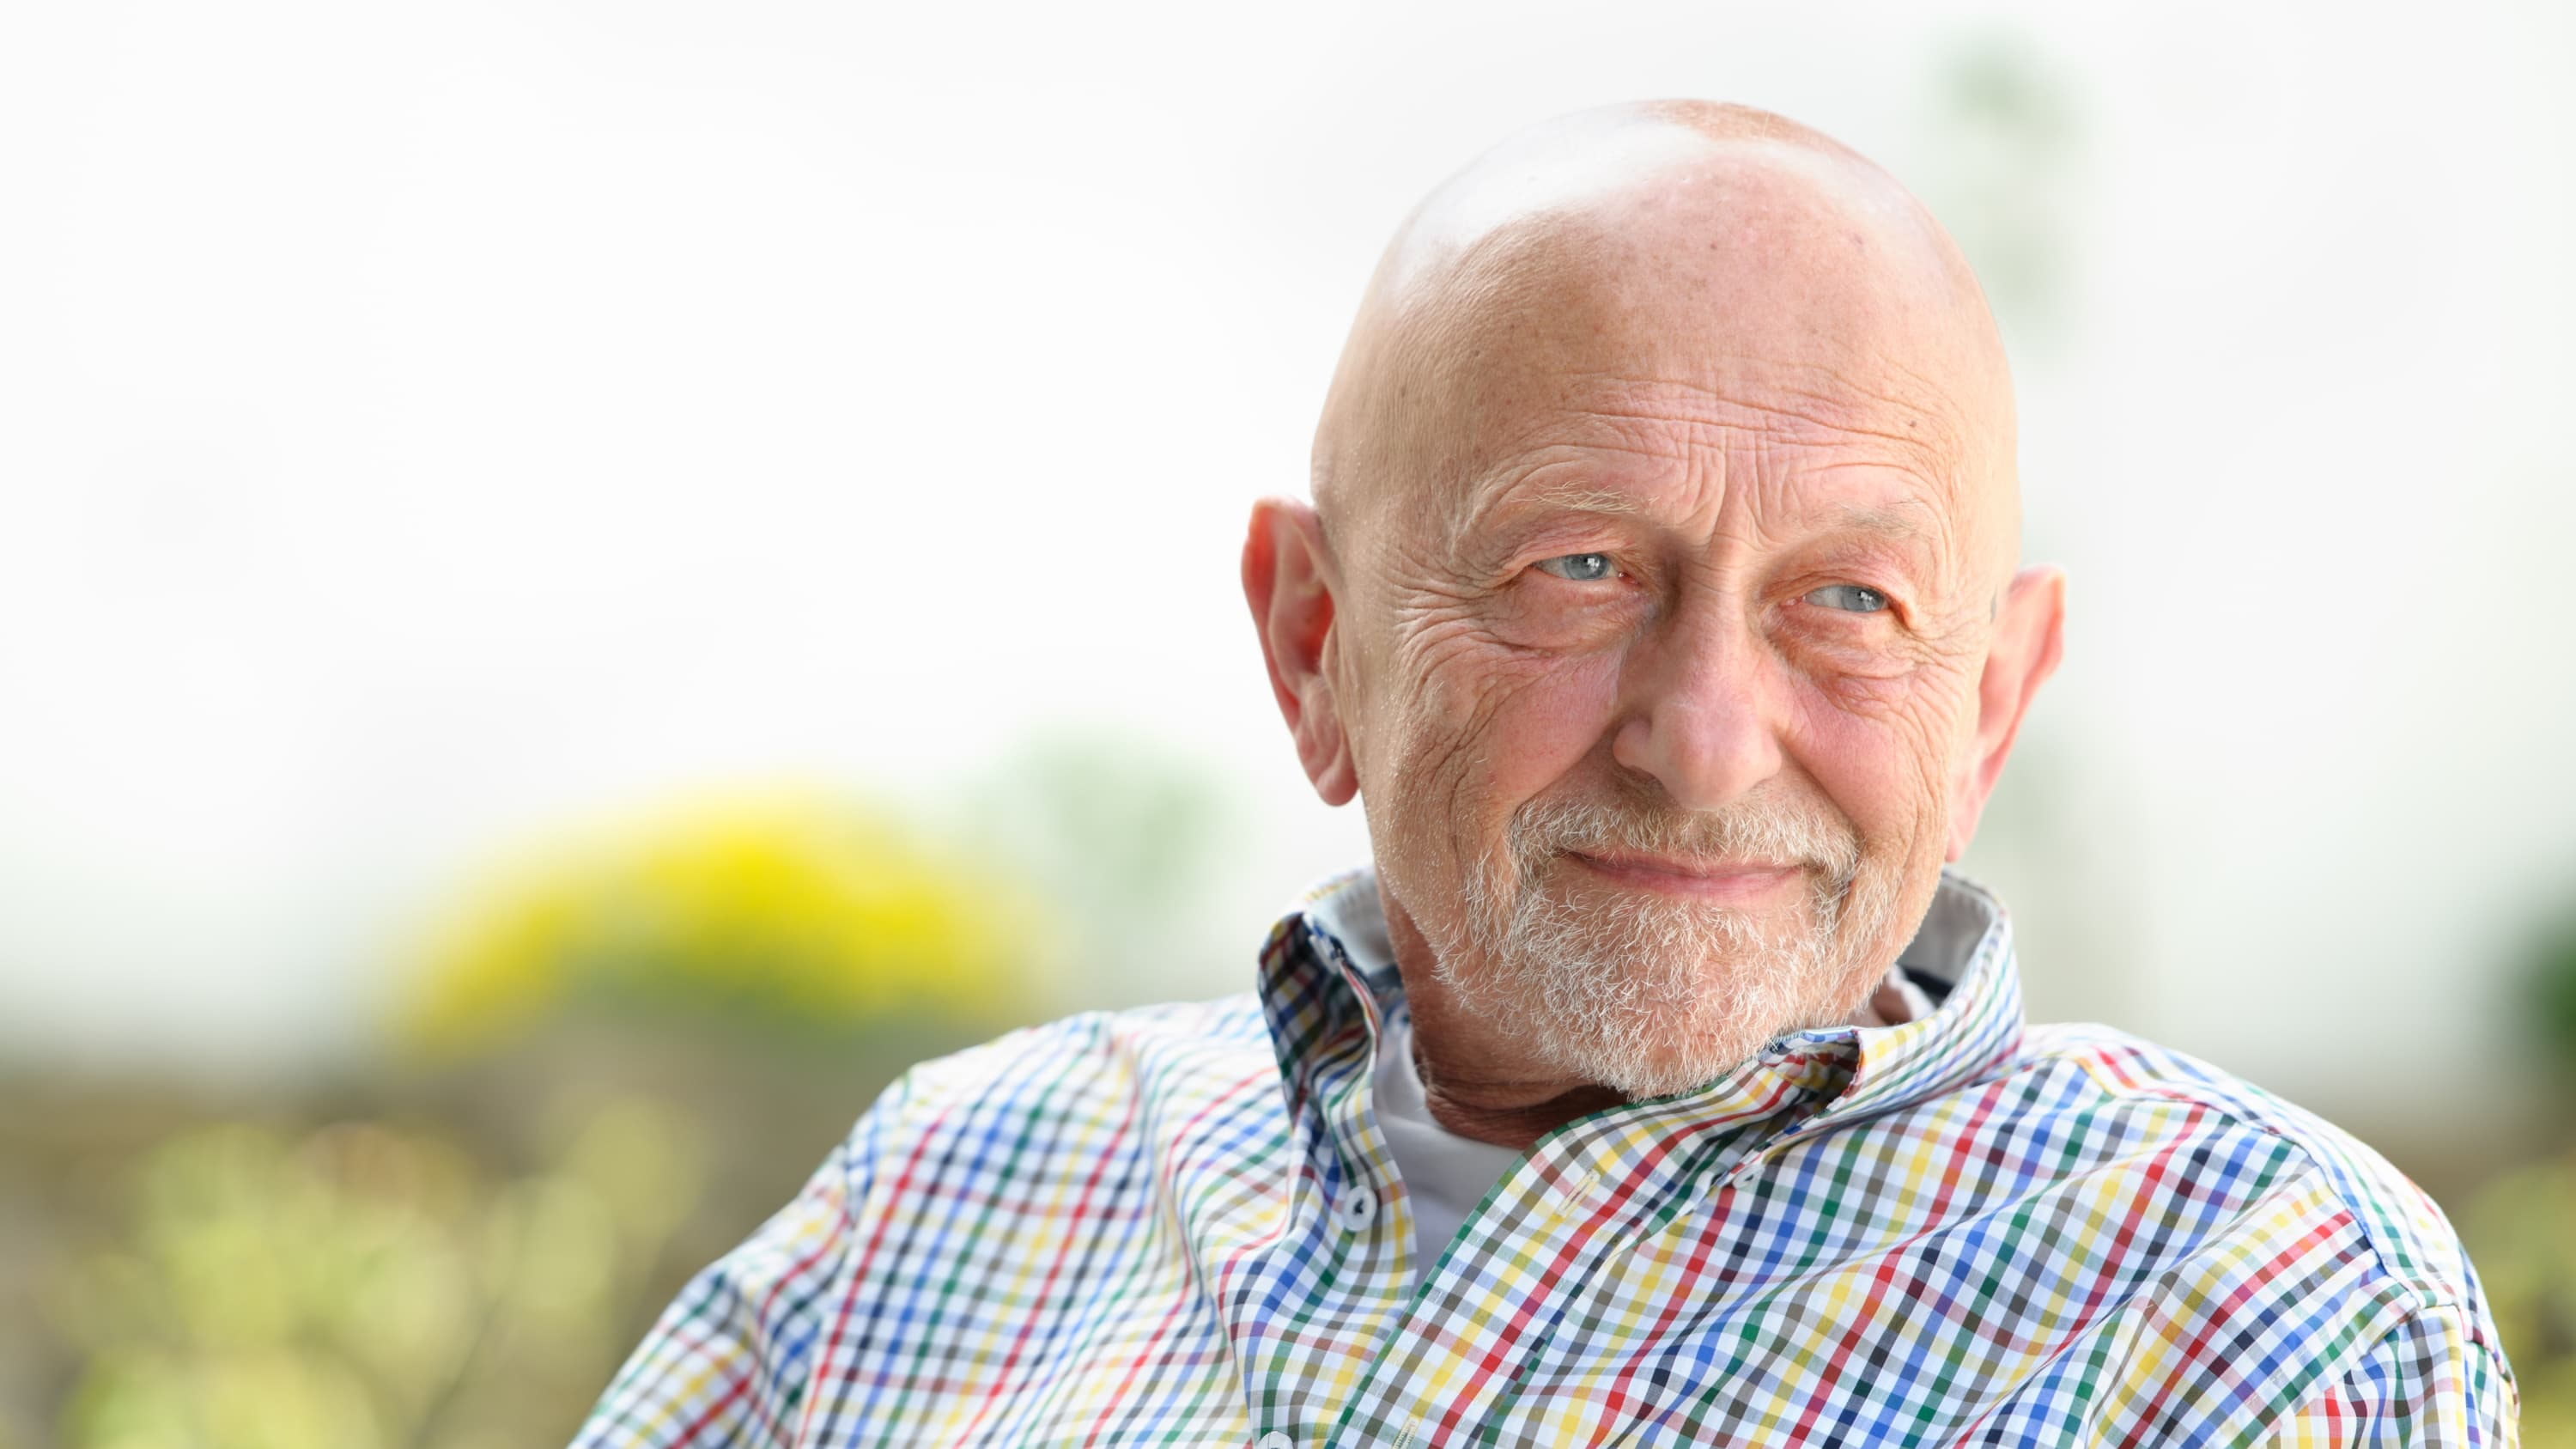 An older man who needs deep brain stimulation looks off in the distance.